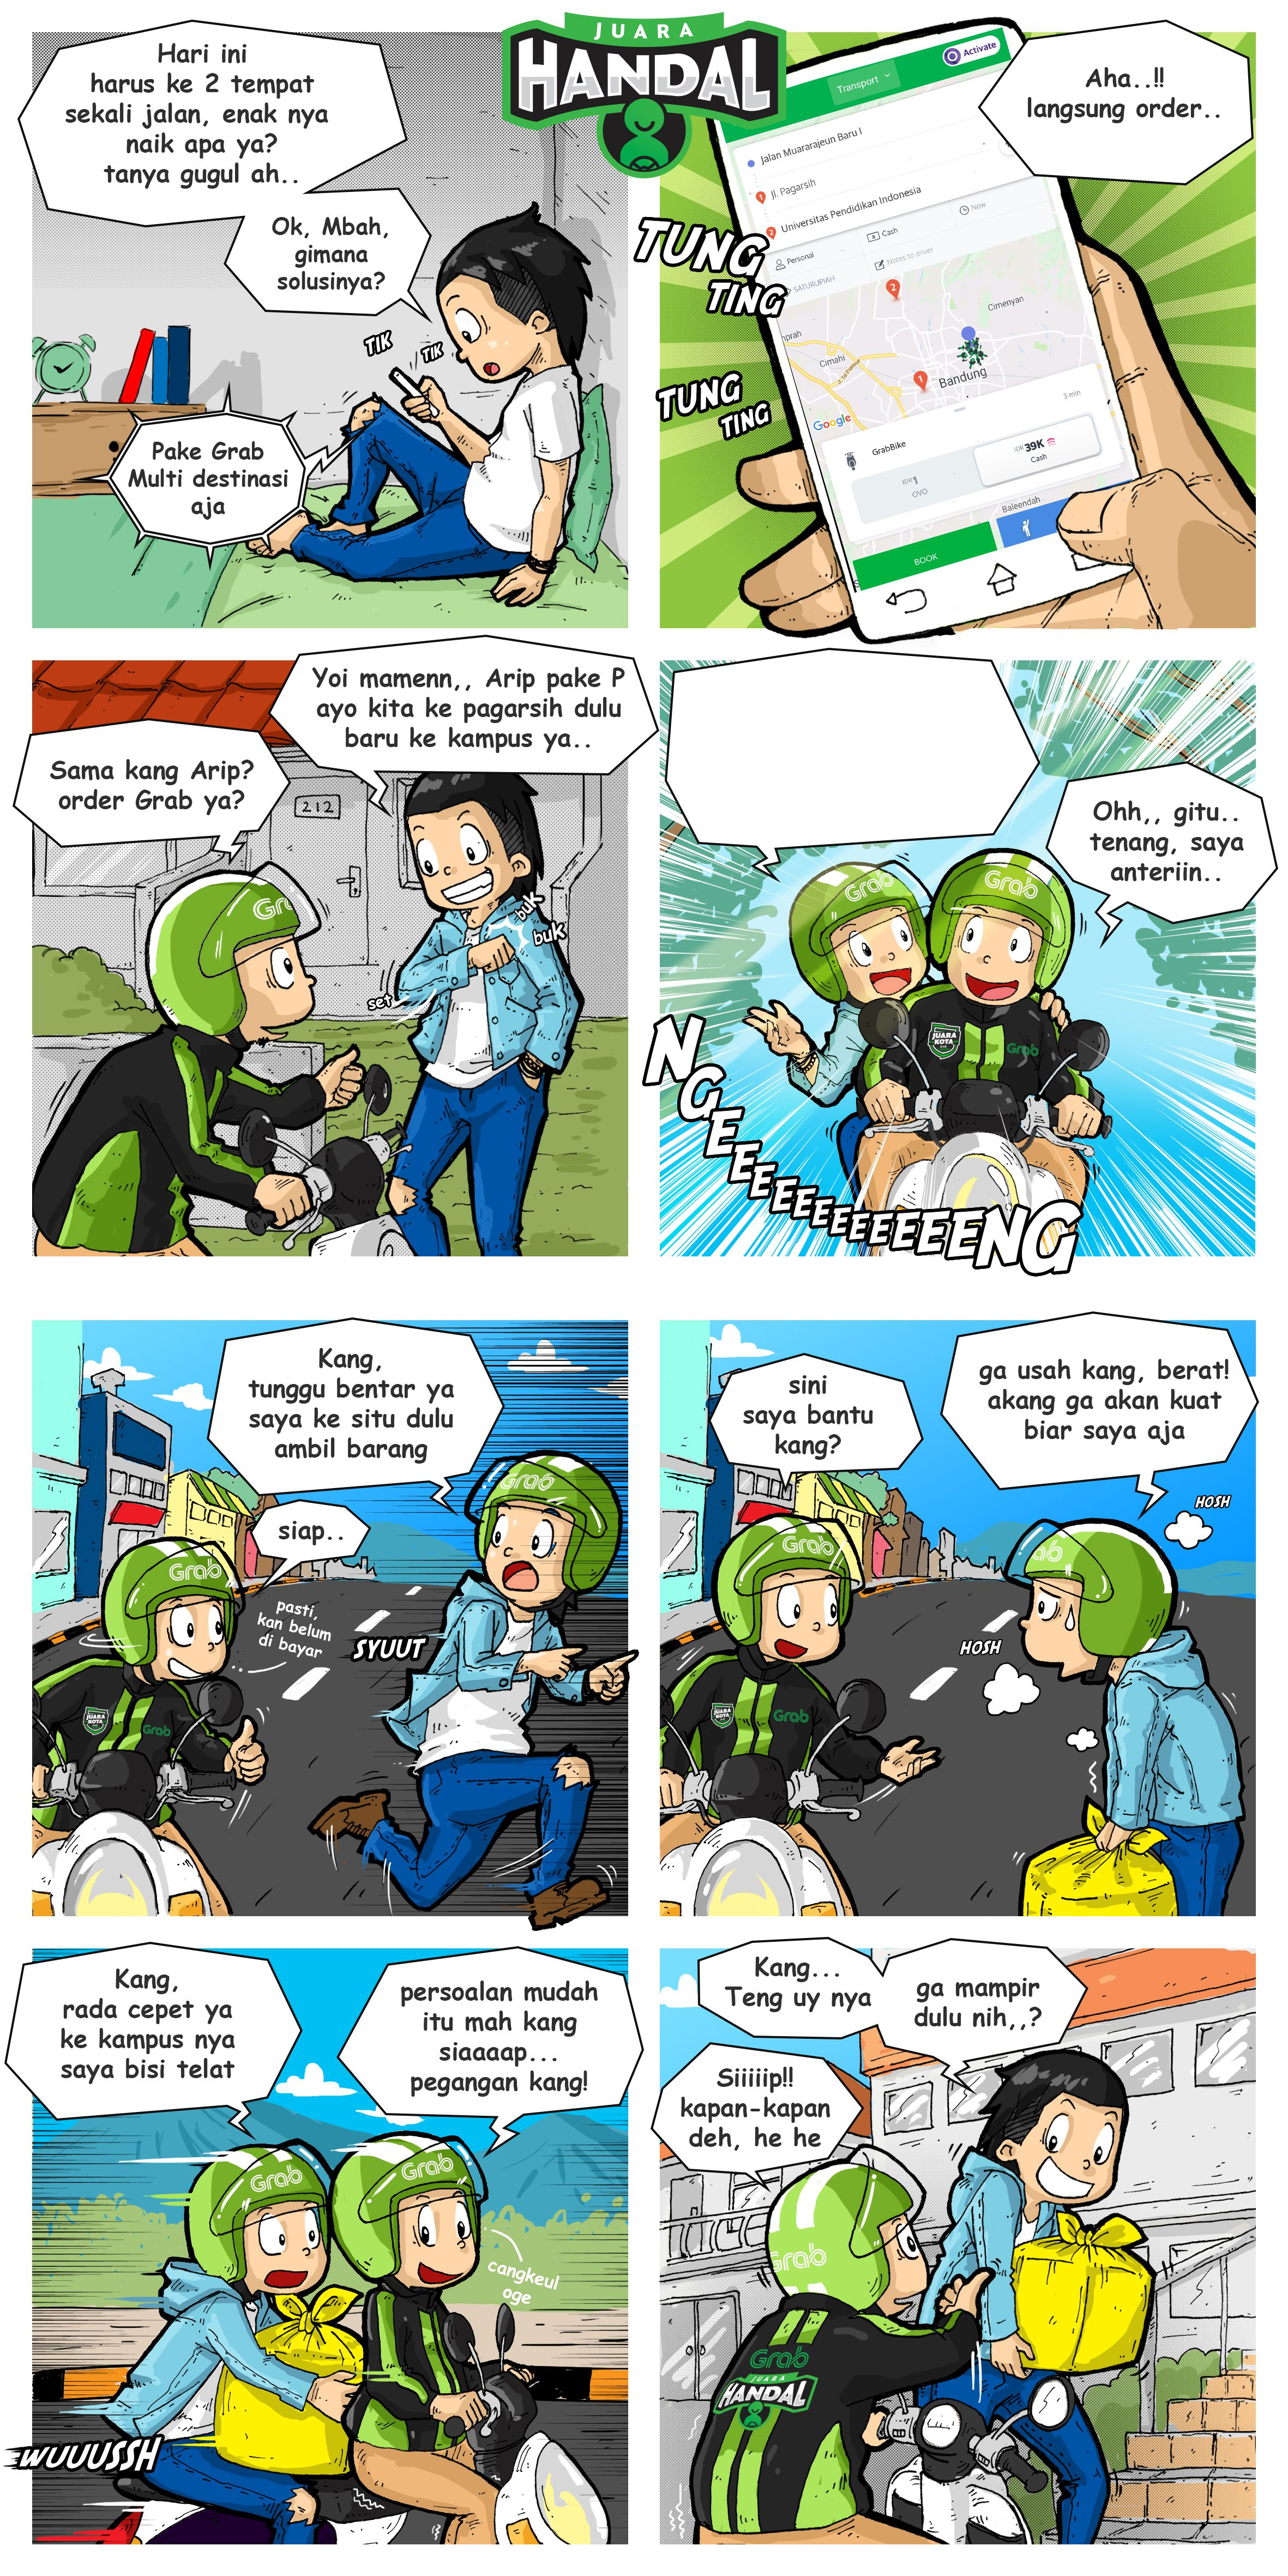 Making Comics For Online Transportation About One Of The Features Of Grab Indonesia Juara Persamaan